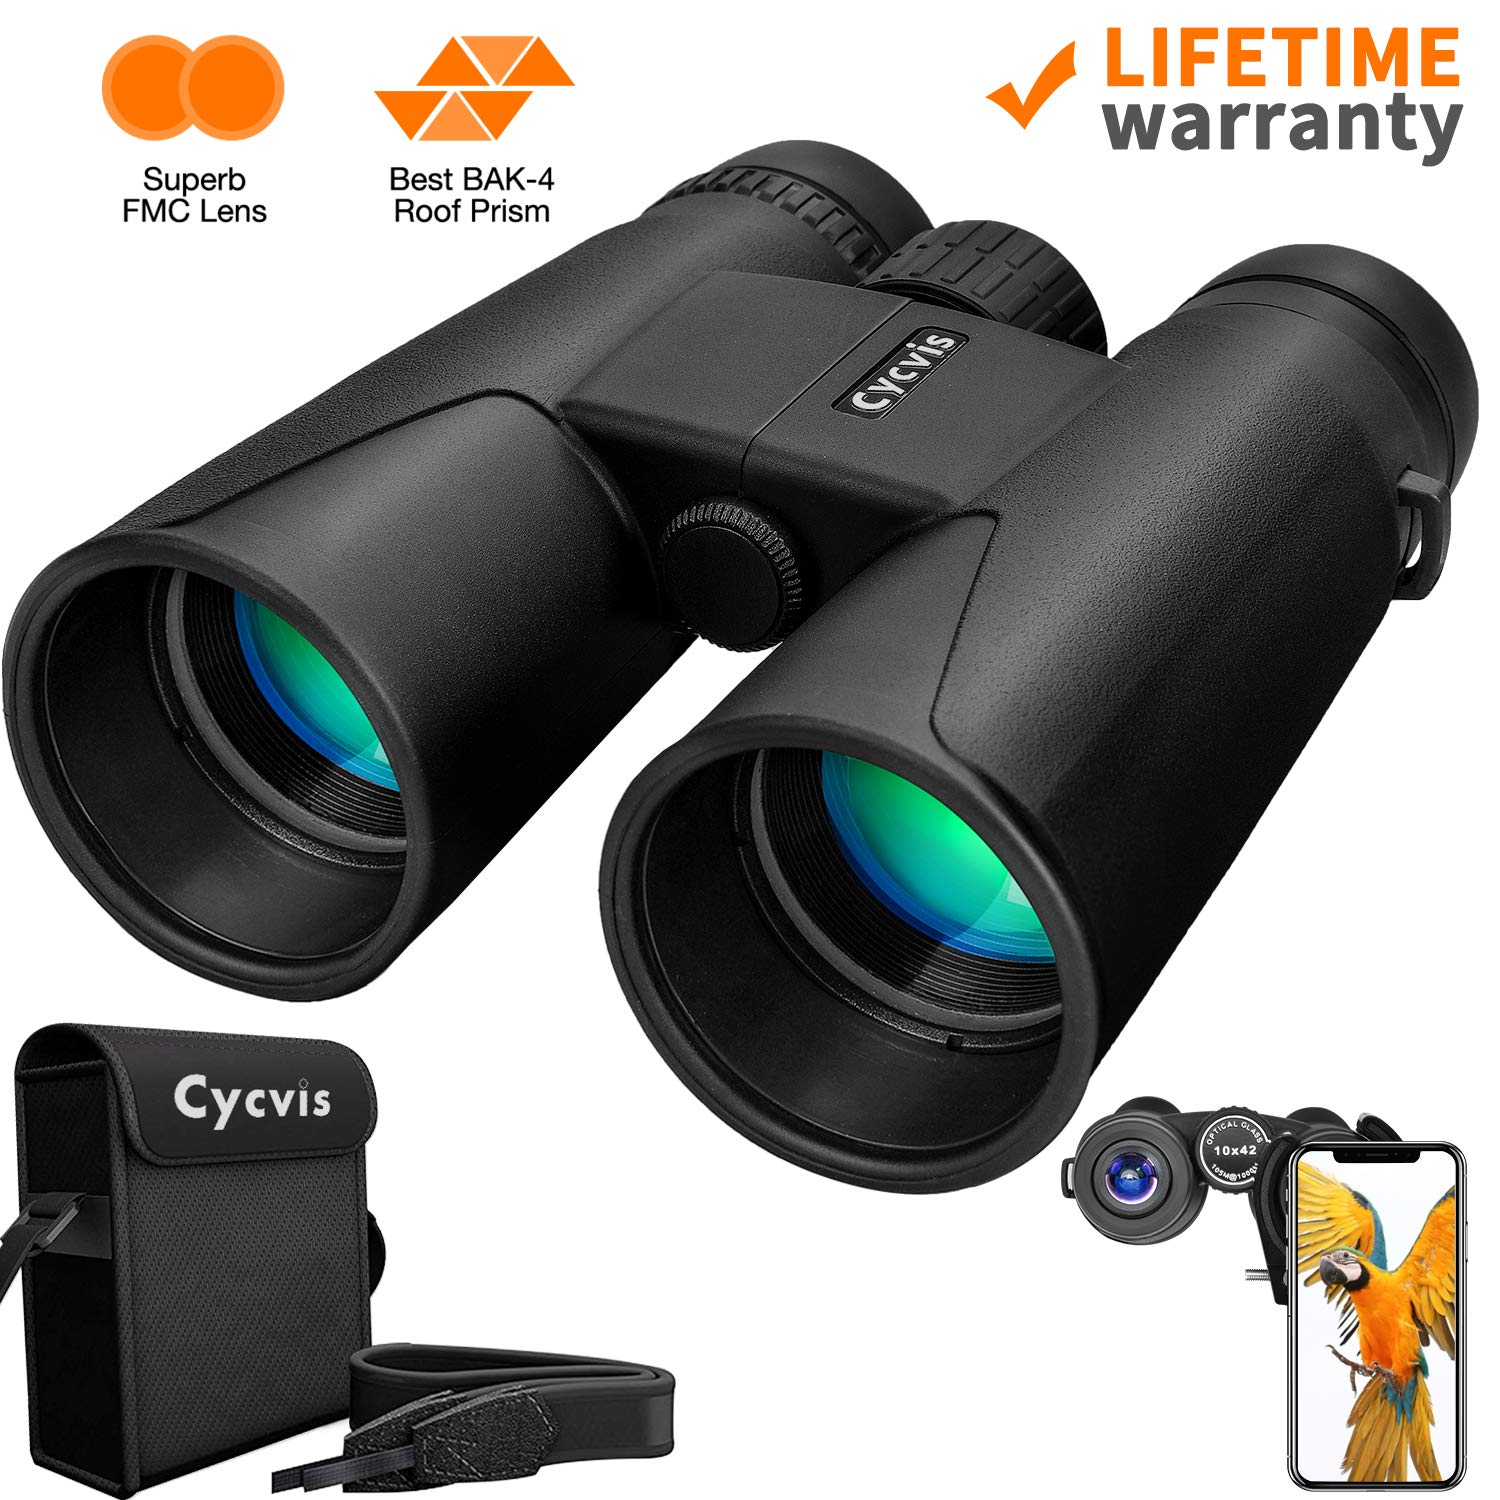 Binoculars for Adults – 10×42 Professional HD Binoculars Durable Full-Size, Binoculars for Bird Watching Travel Sightseeing Outdoor Sports Games and Concerts with Clear Weak Light Vision 1.1 pounds